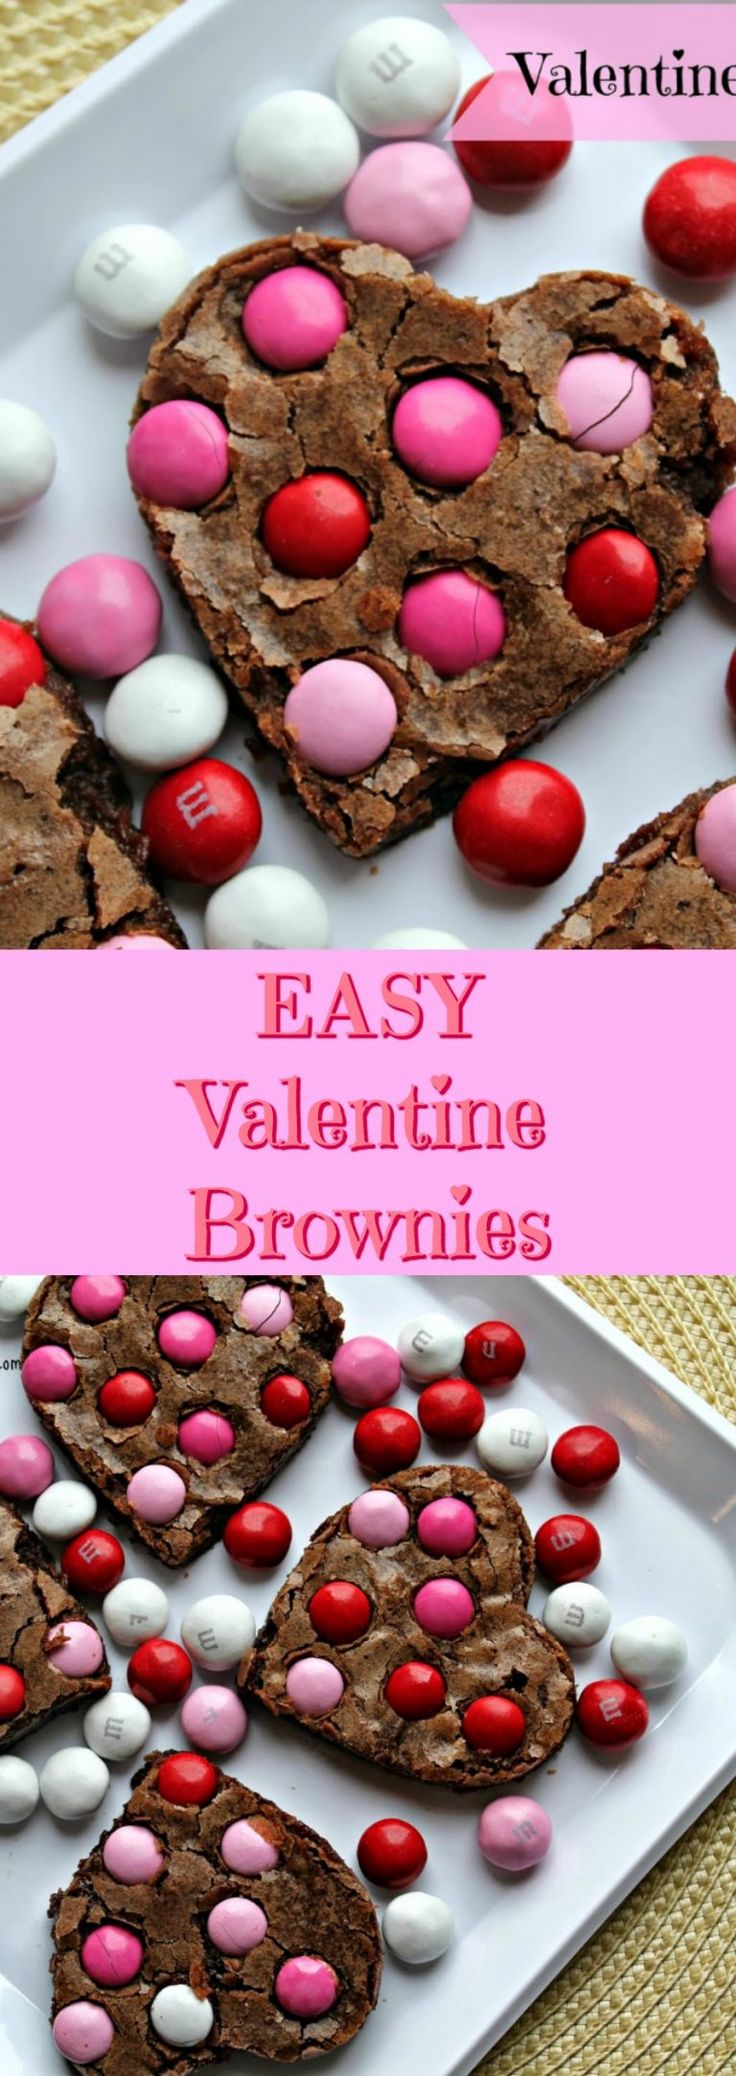 EASY Valentine Brownies - No fancy baking skills required. All you need is a shortcut recipe like this one. These valentine brownies are festive and will put smiles on everyone's faces!